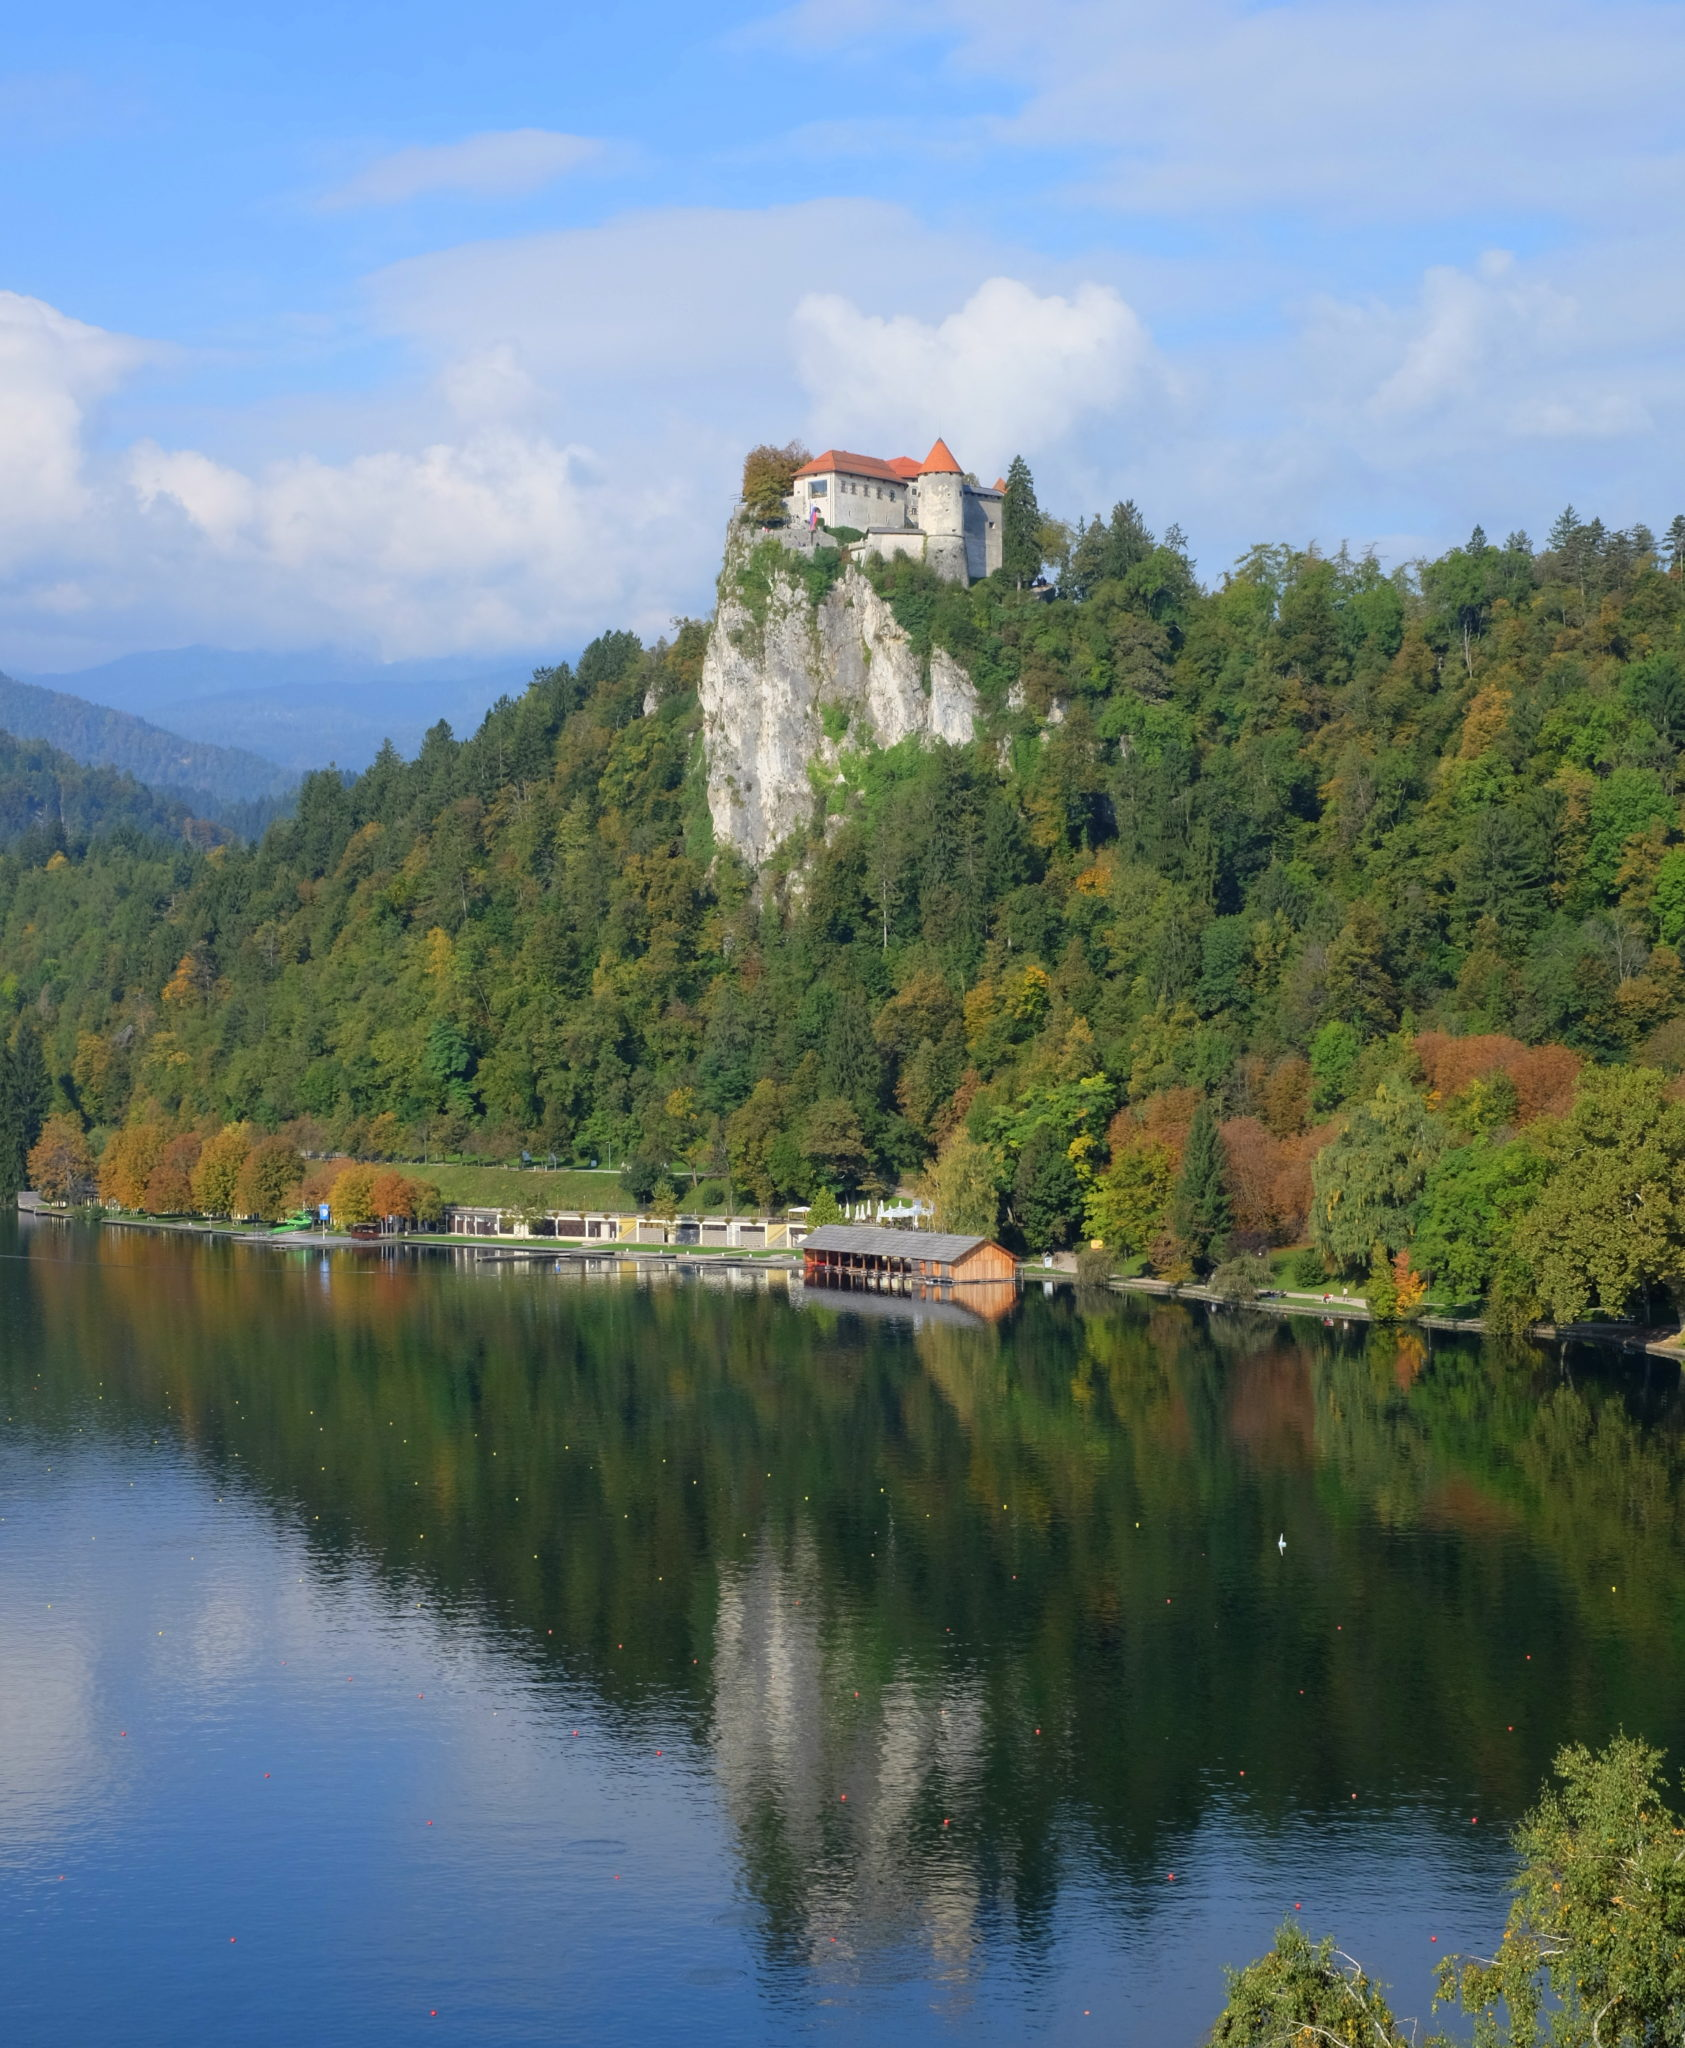 Bled Castle and its reflection